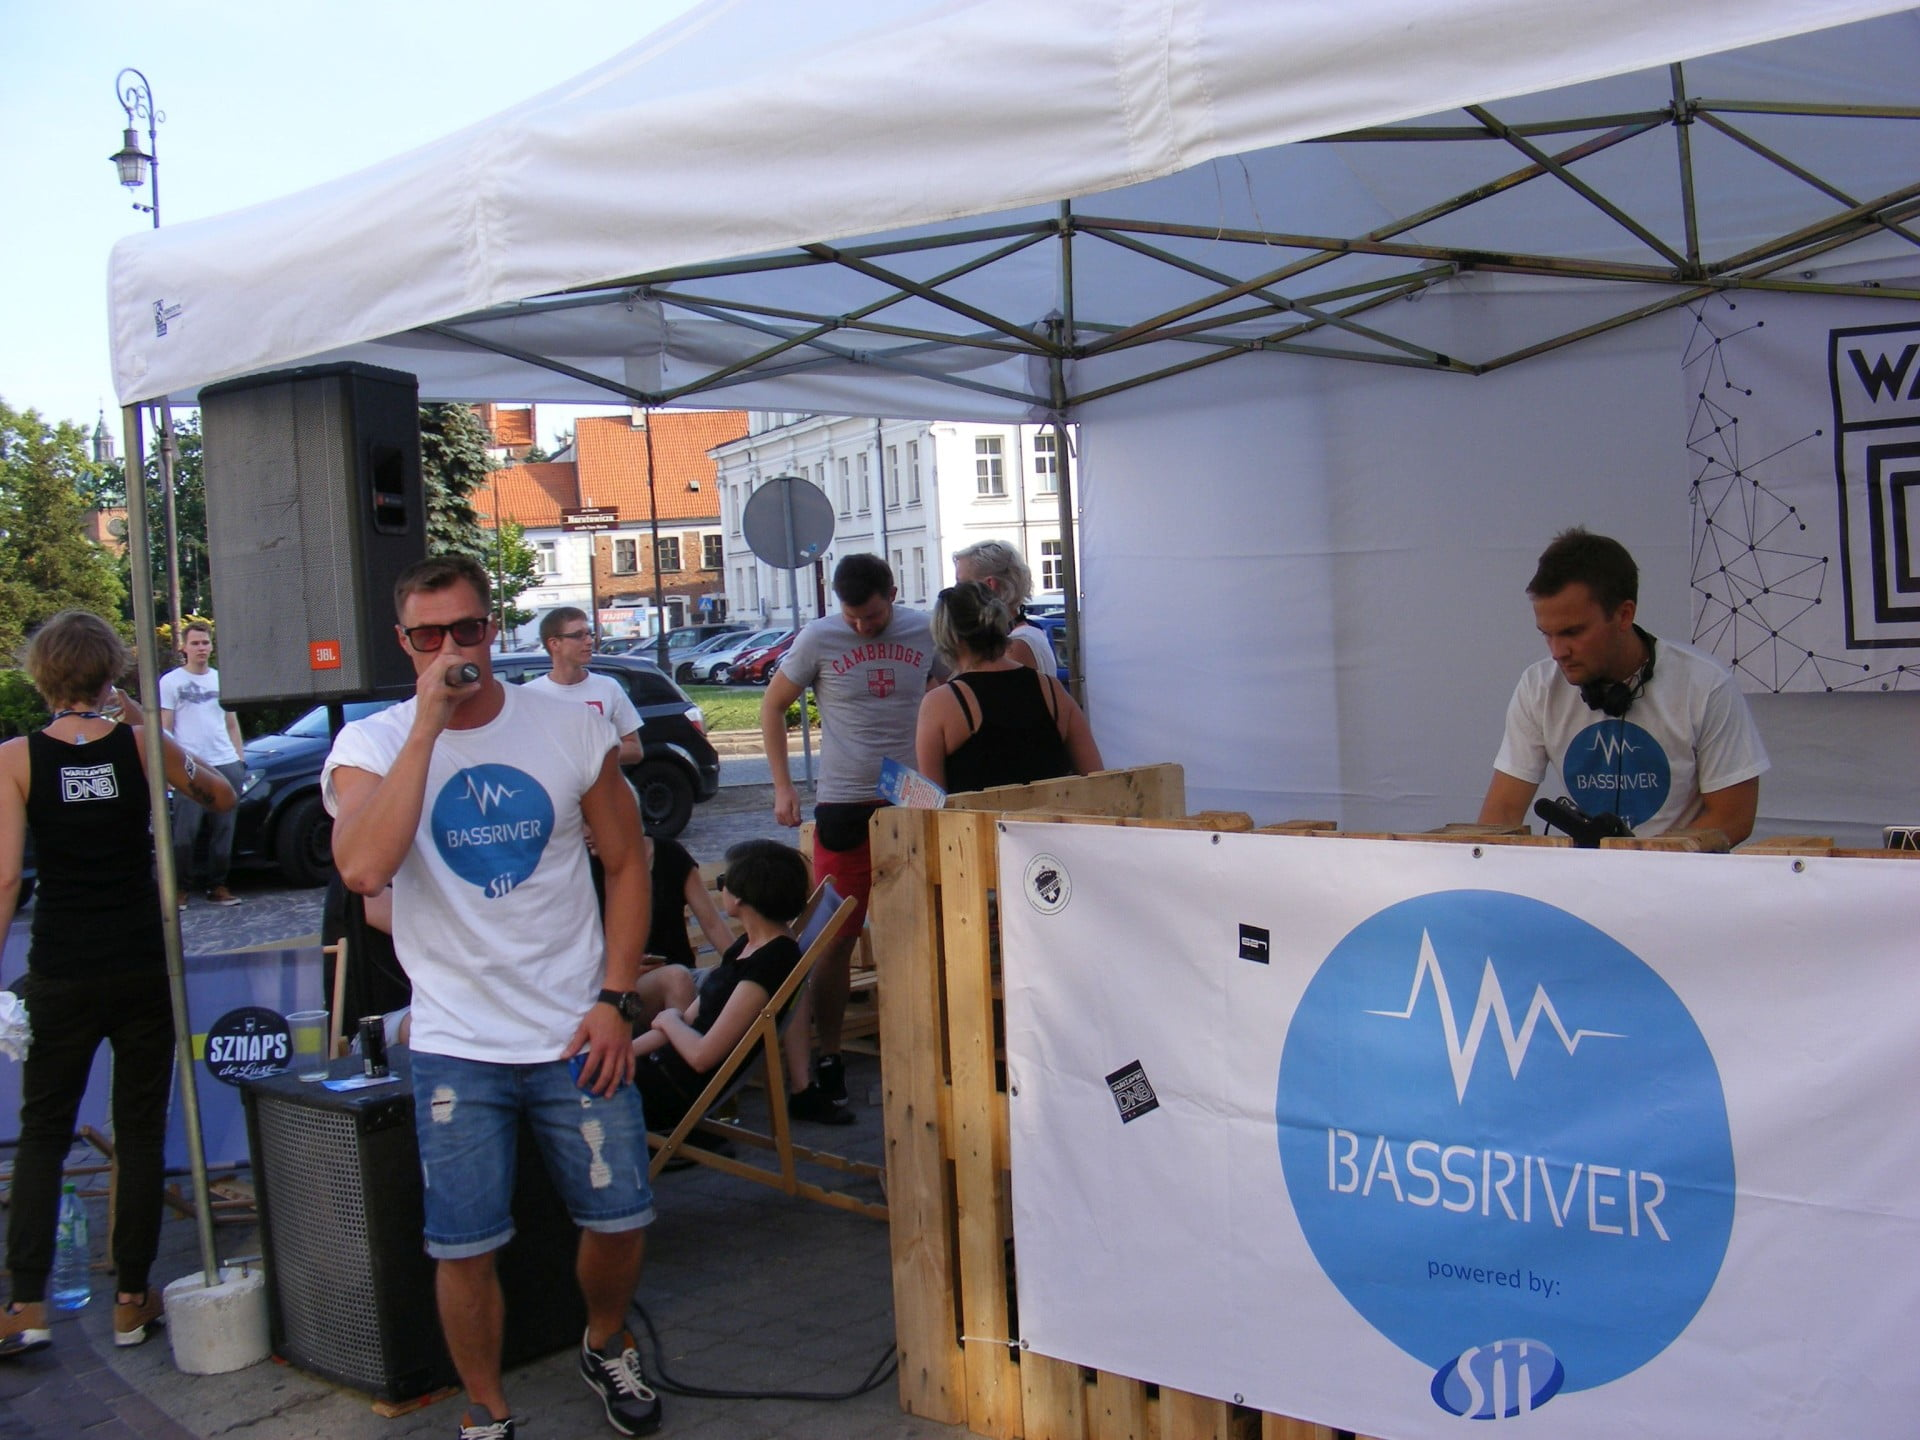 BassRiver powered by Sii 3